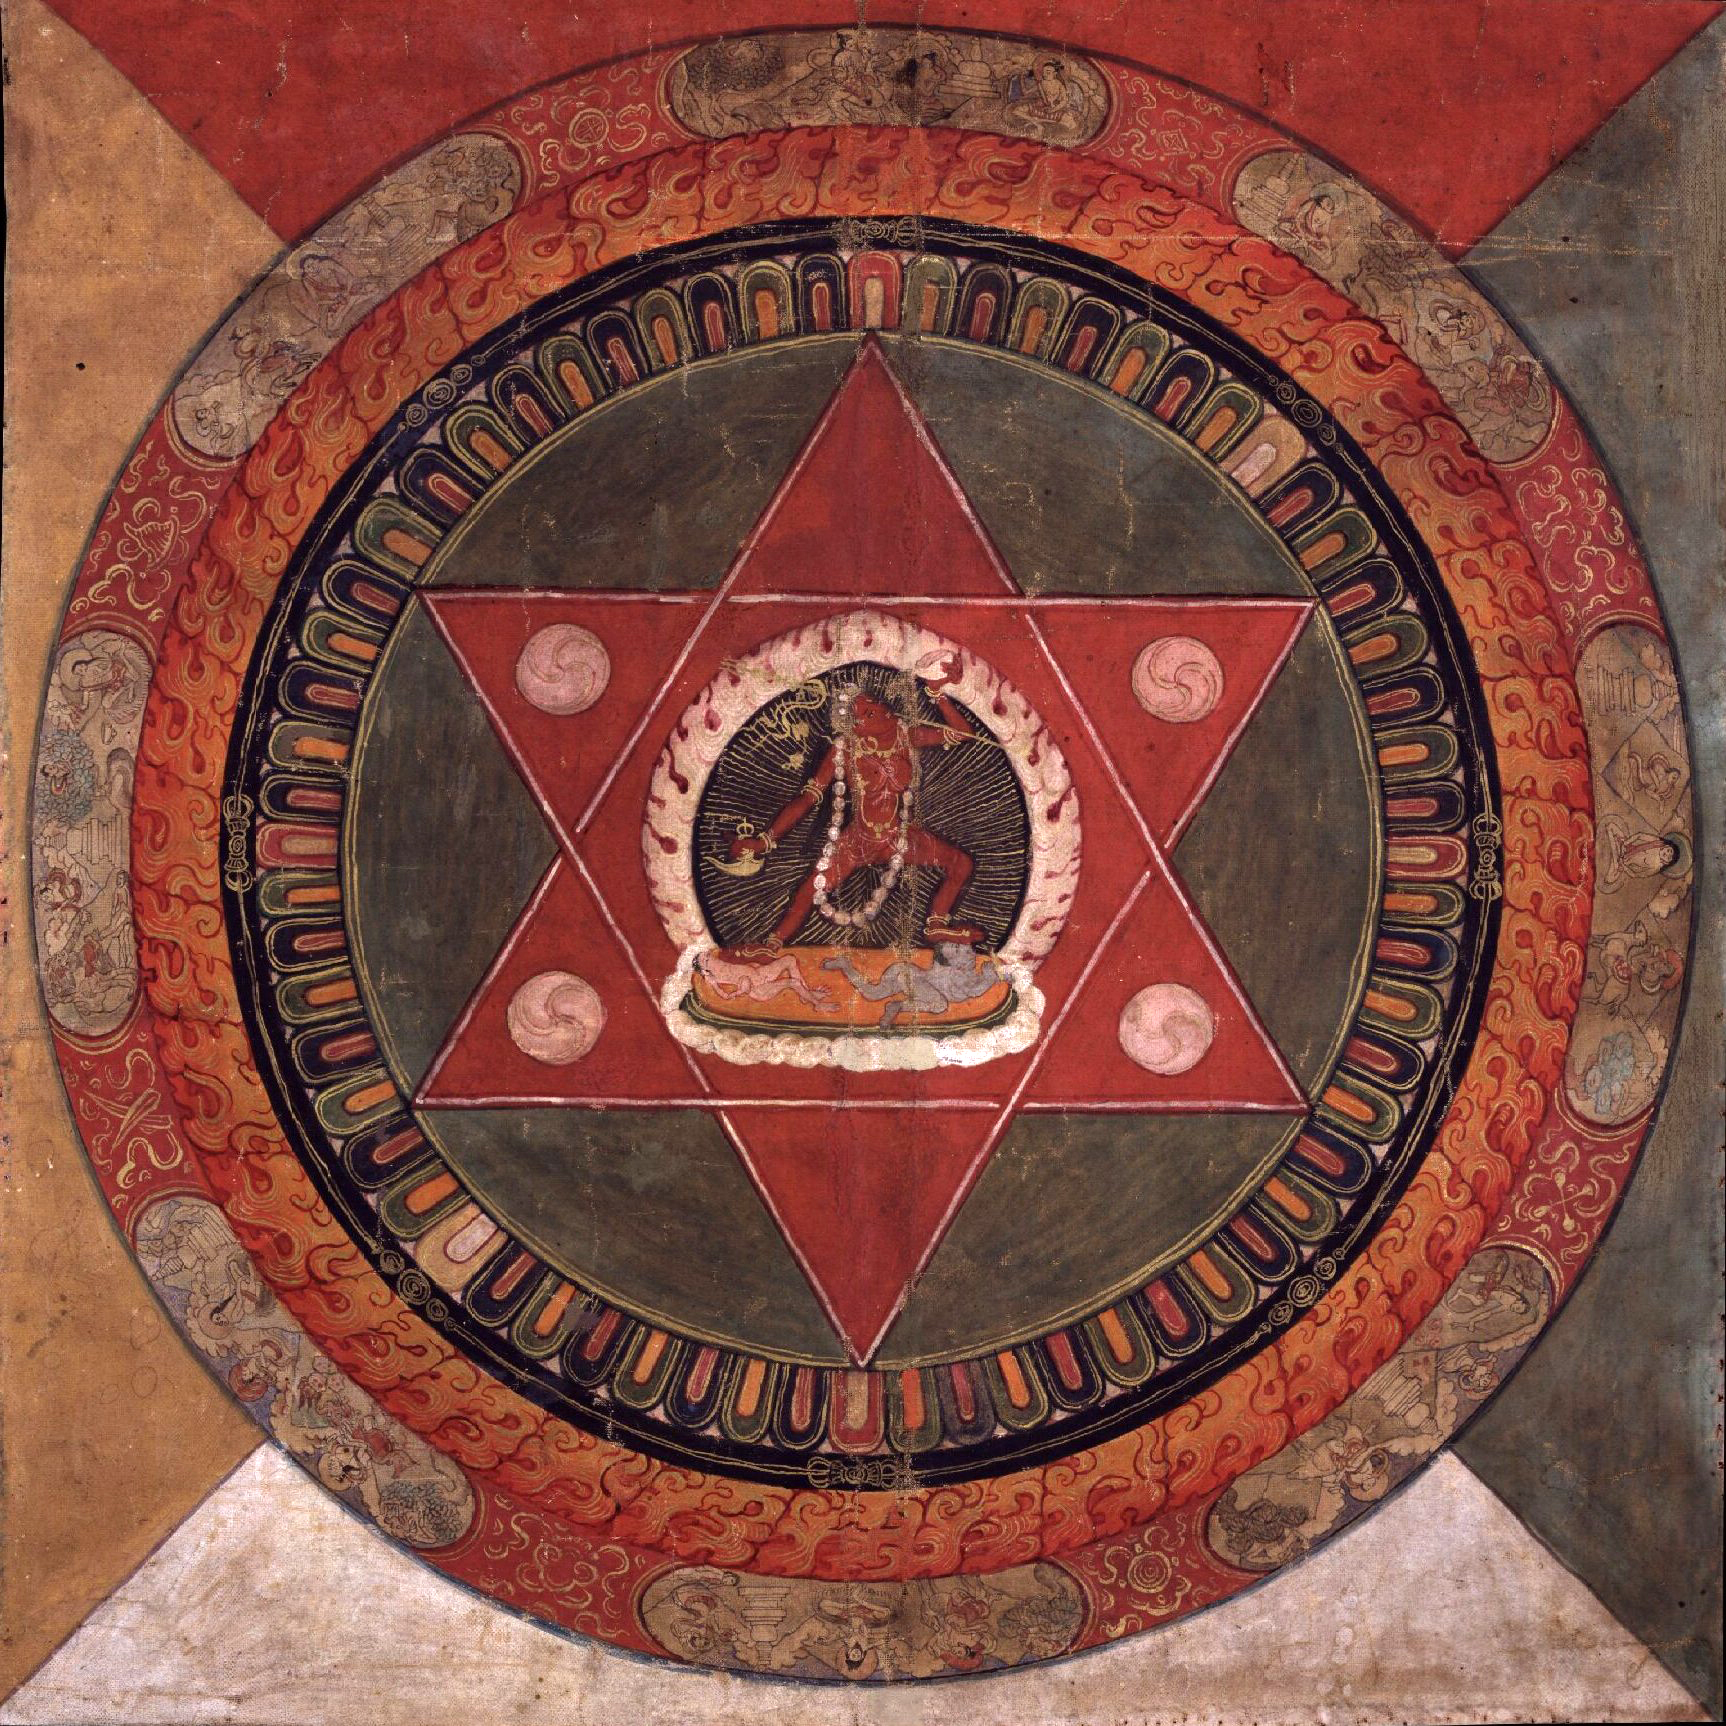 Painted_19th_century_Tibetan_mandala_of_the_Naropa_tradition,_Vajrayogini_stands_in_the_center_of_two_crossed_red_triangles,_Rubin_Museum_of_Art